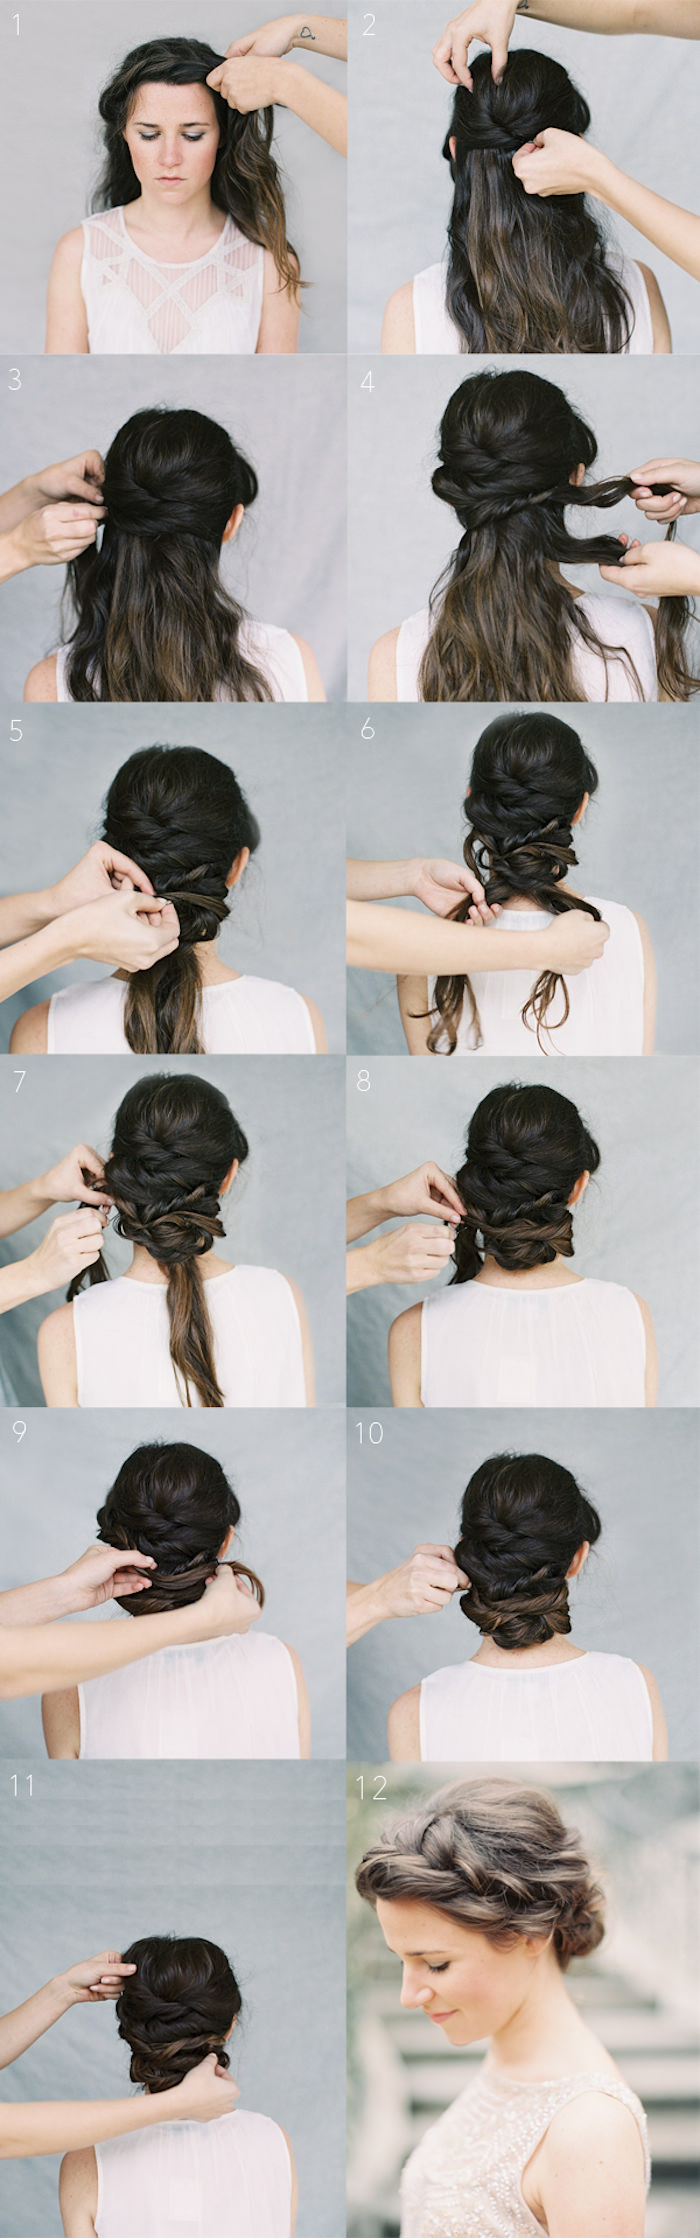 Crown Braid Chignon Summer Wedding Hairstyle Tutorial